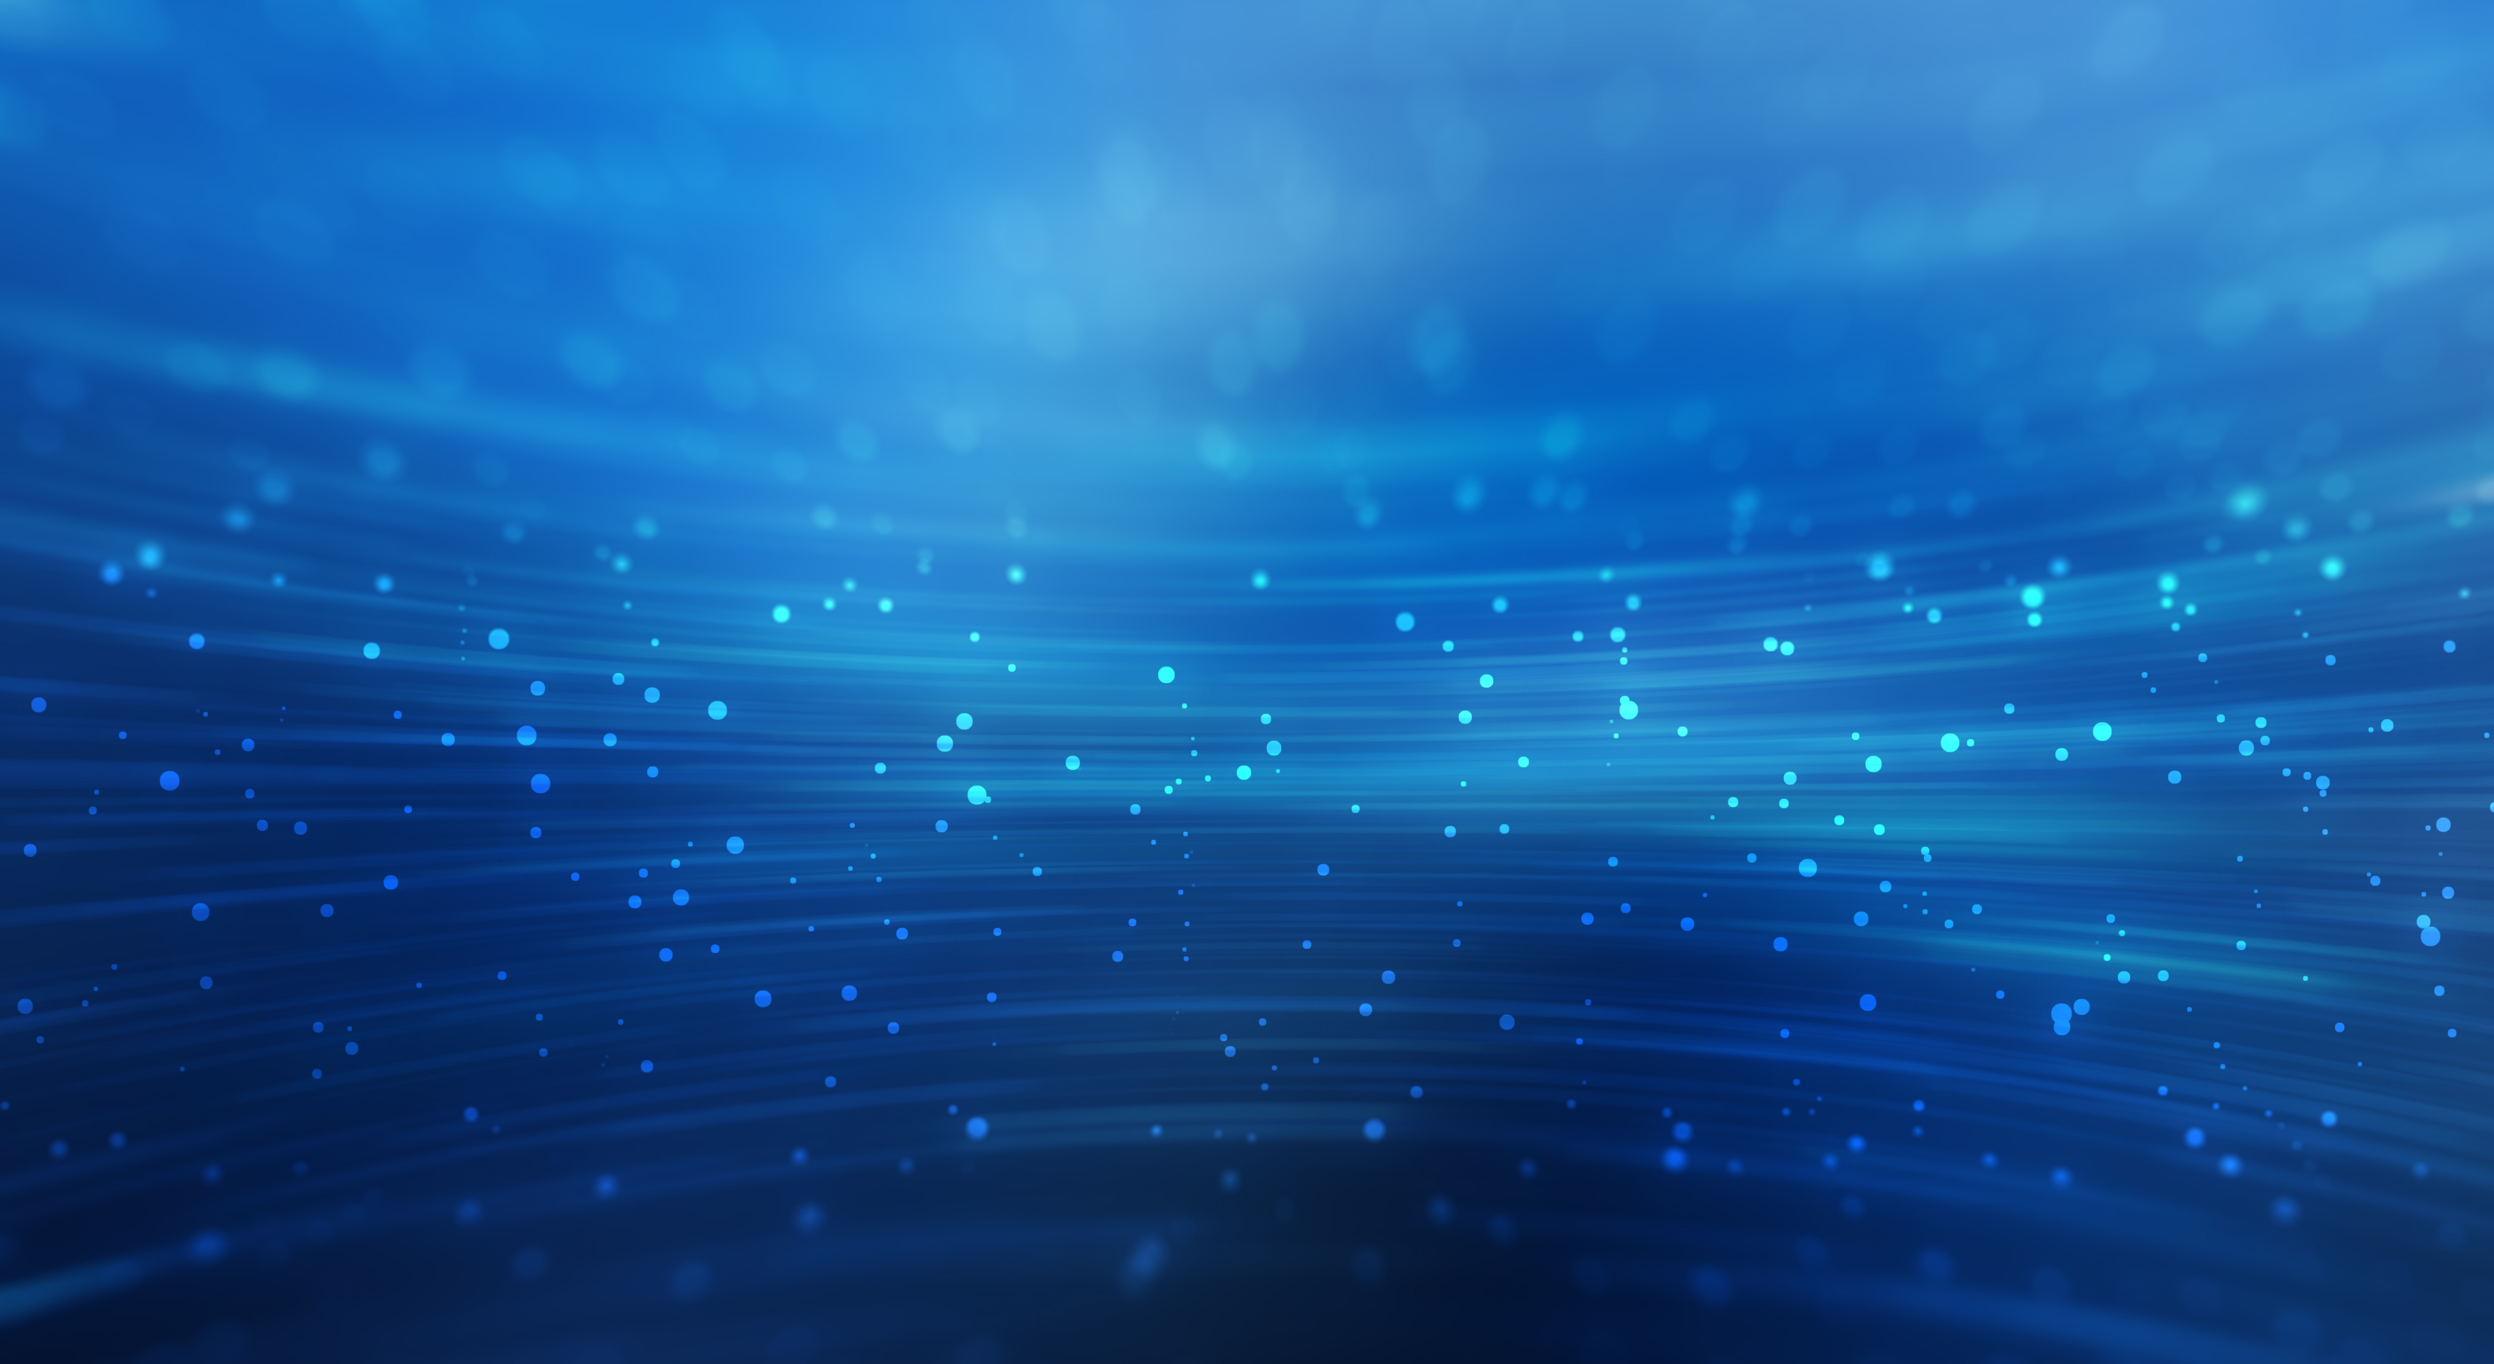 Blue Background Image with Stars